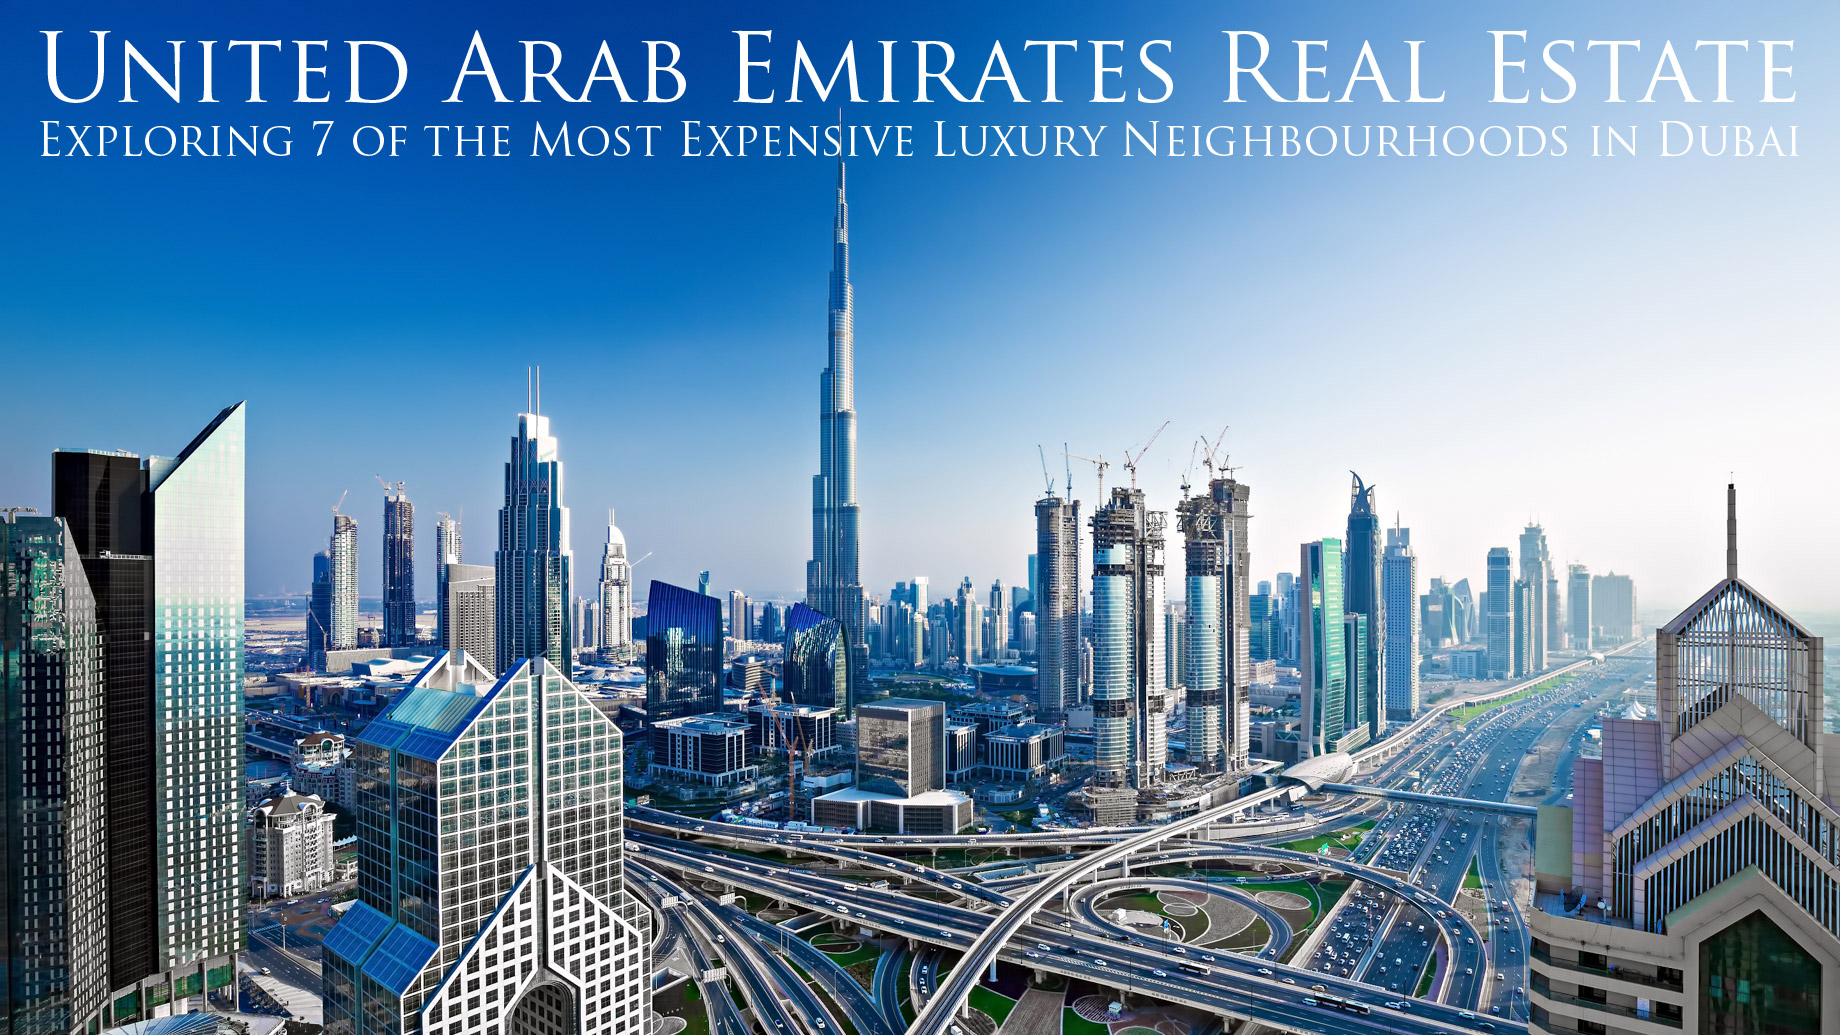 UAE Real Estate - Exploring 7 of the Most Expensive Luxury Neighbourhoods in Dubai